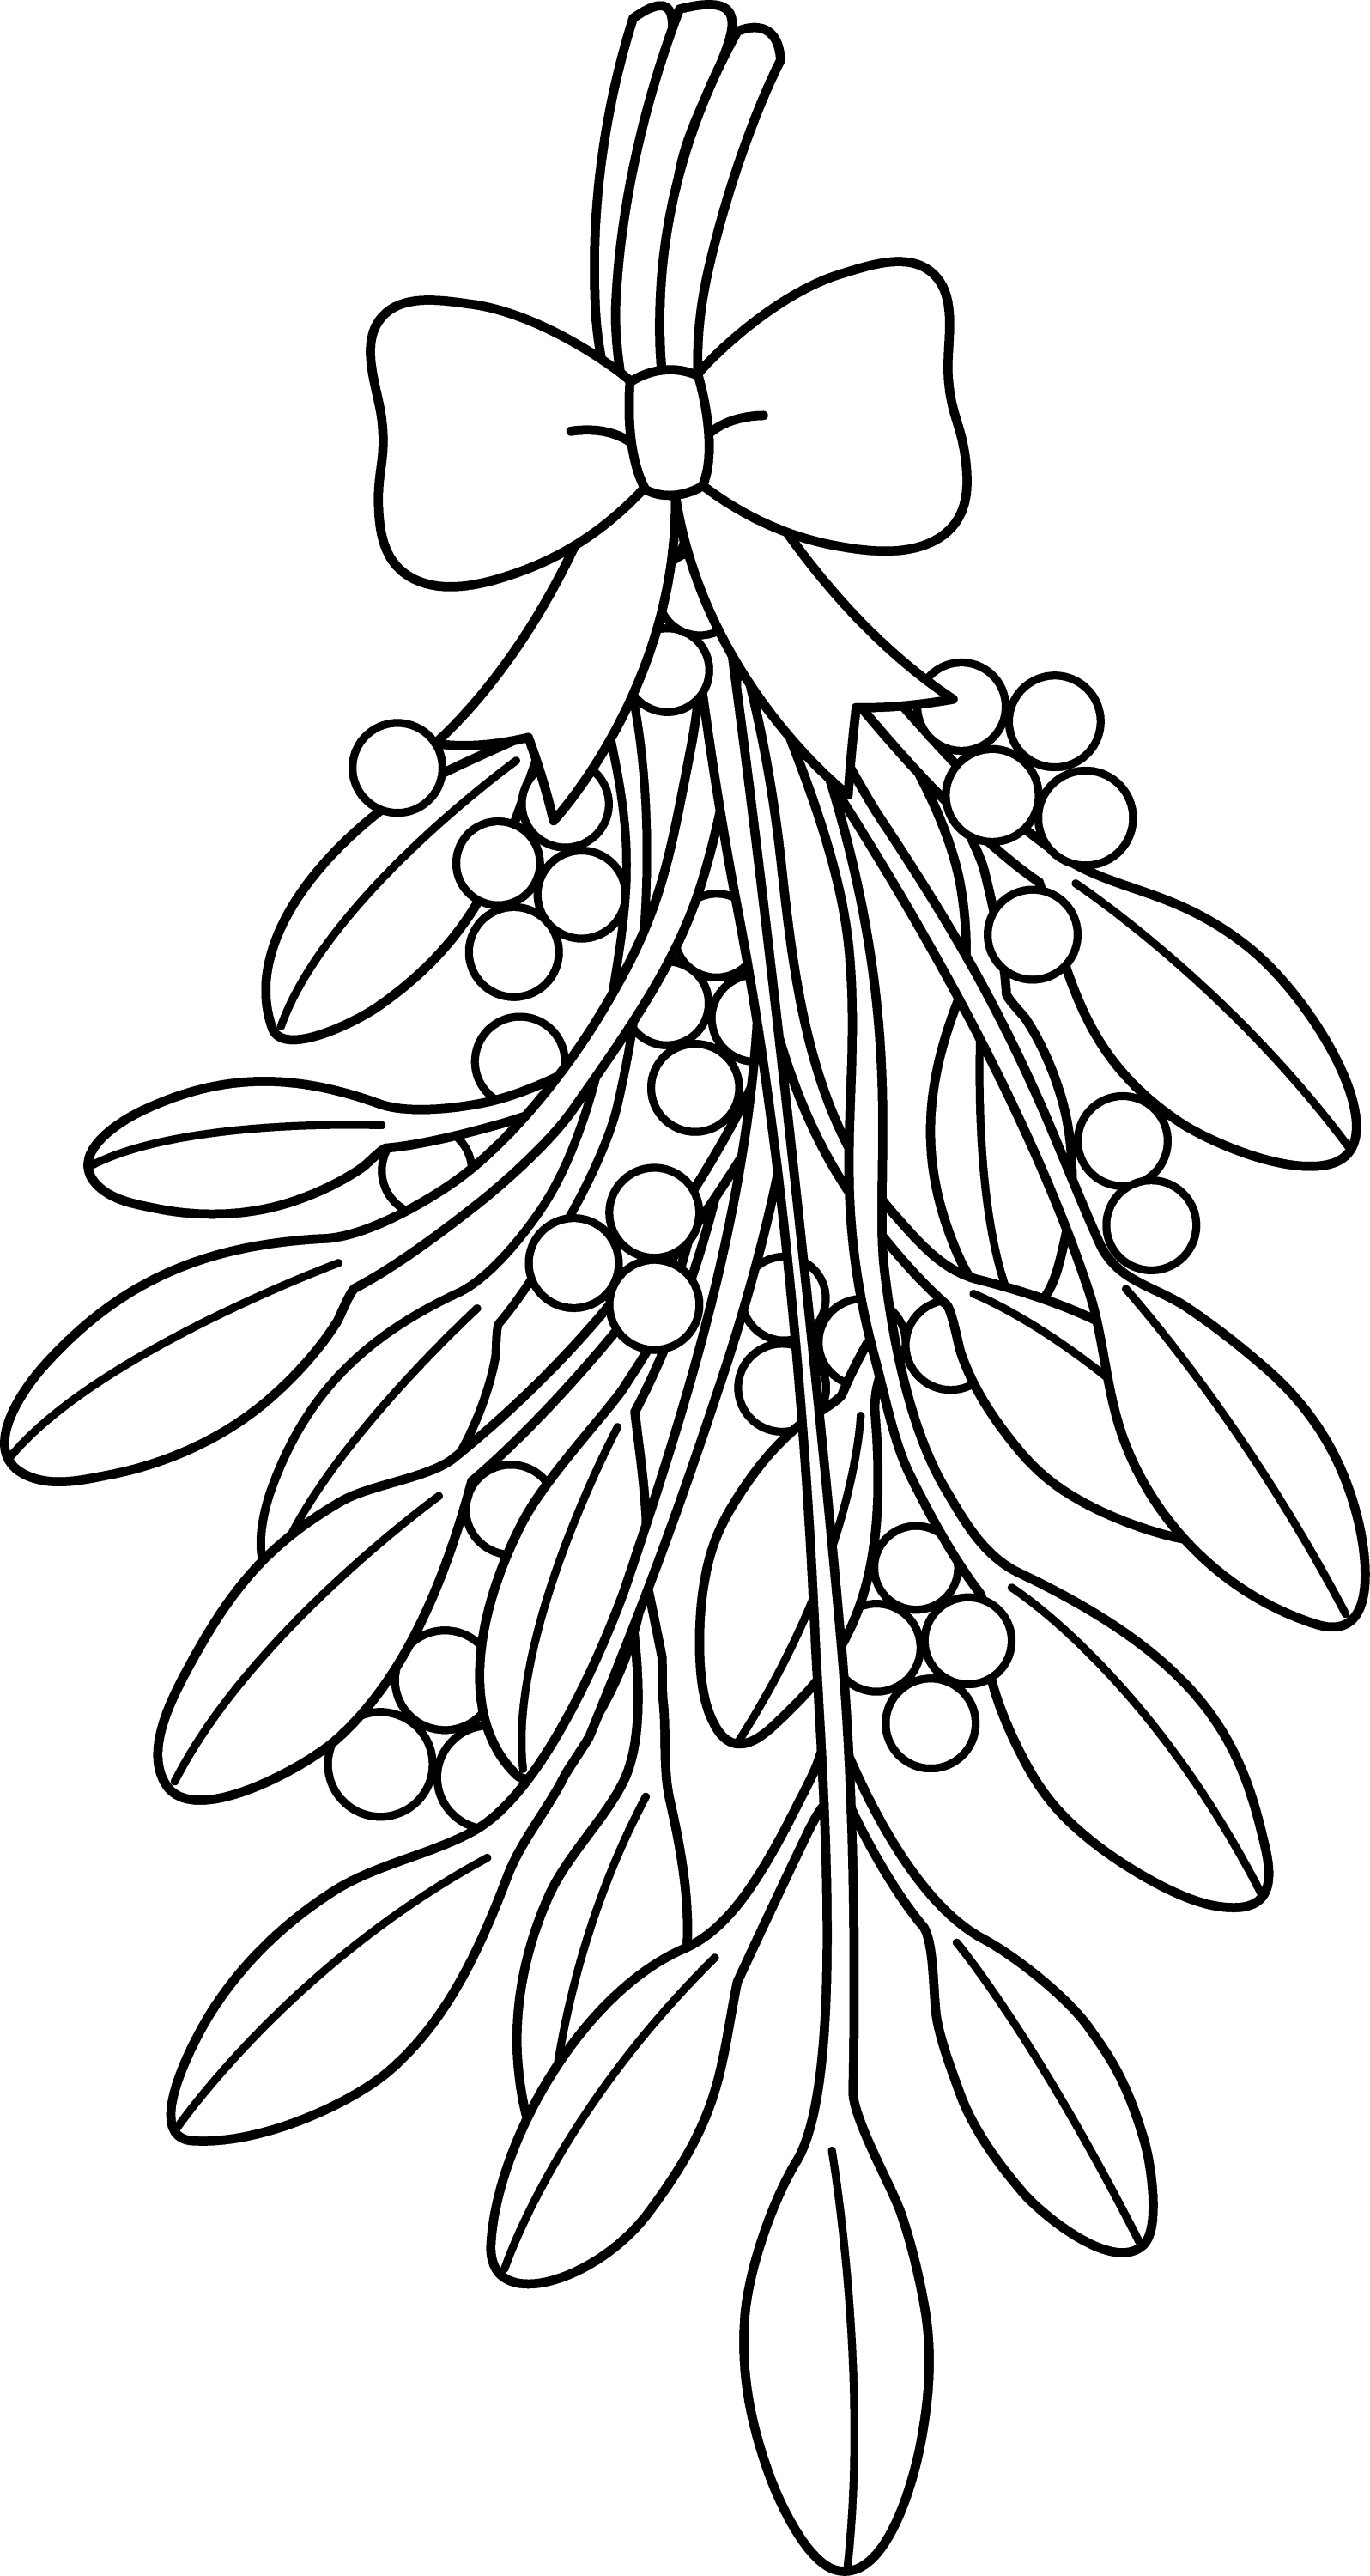 Mistletoe Coloring Page Www Imgkid Com The Image Kid Mistletoe Coloring Pages